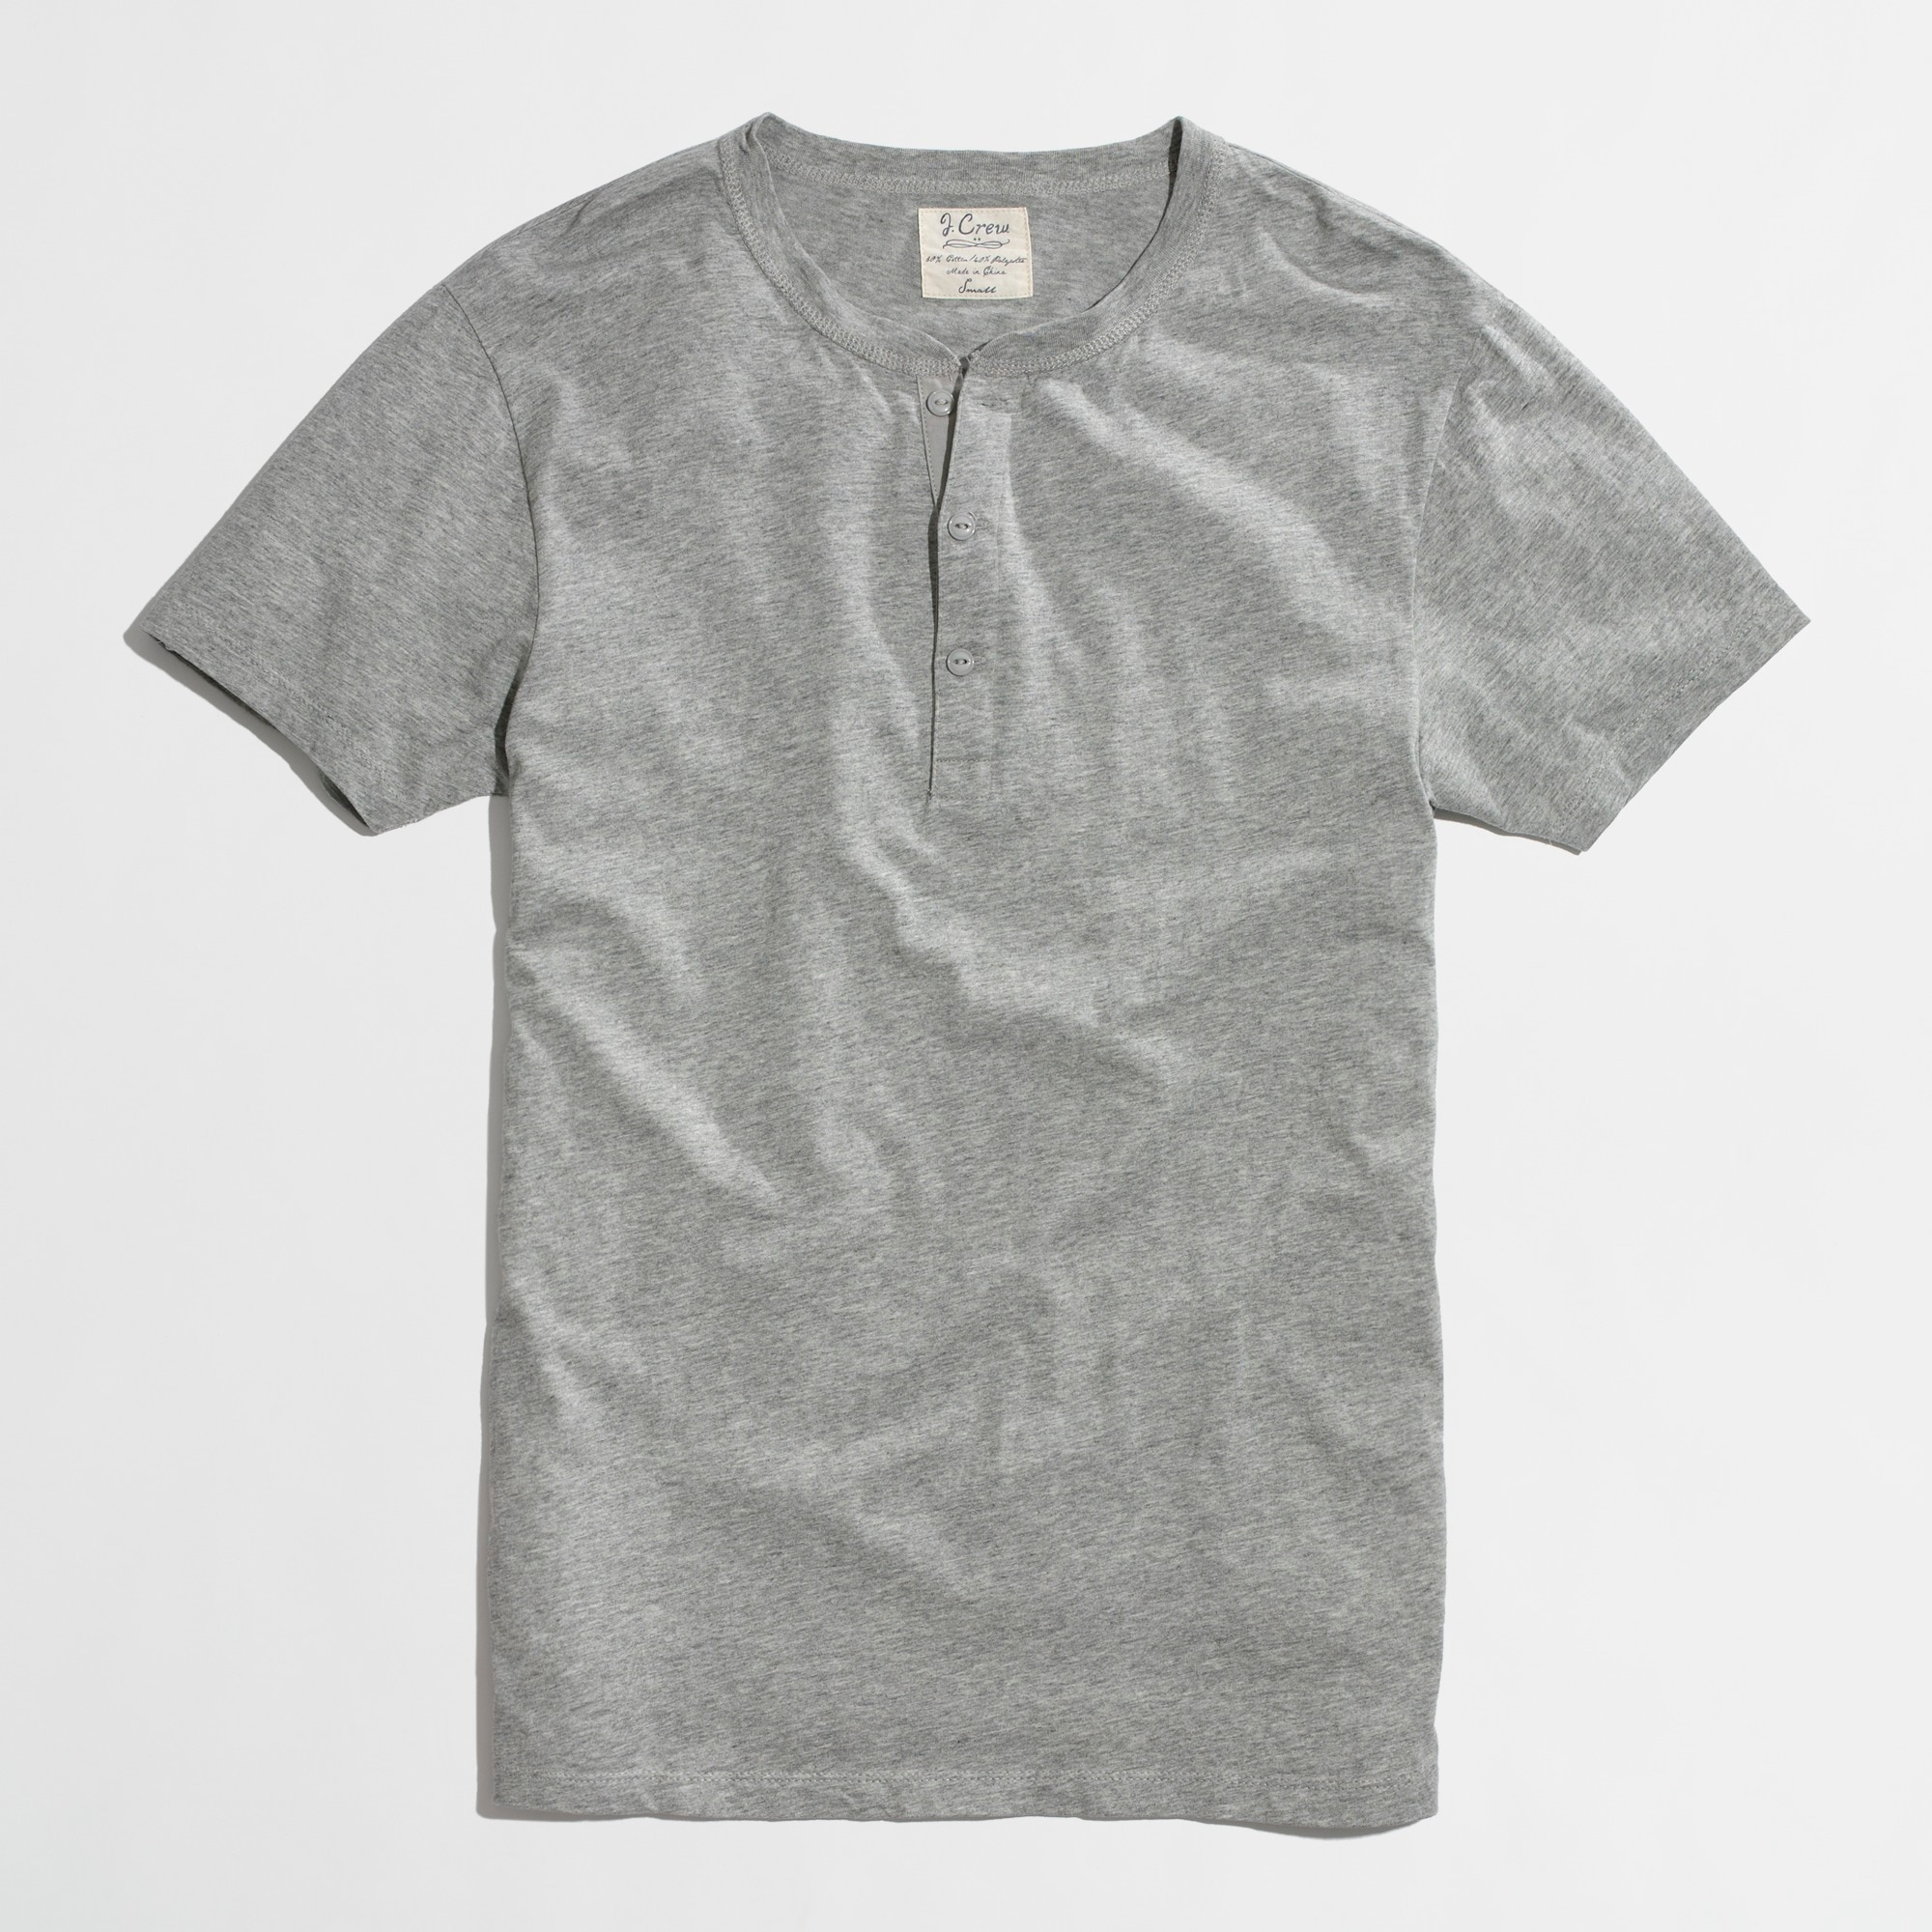 Slim short-sleeve henley factorymen t-shirts & henleys c